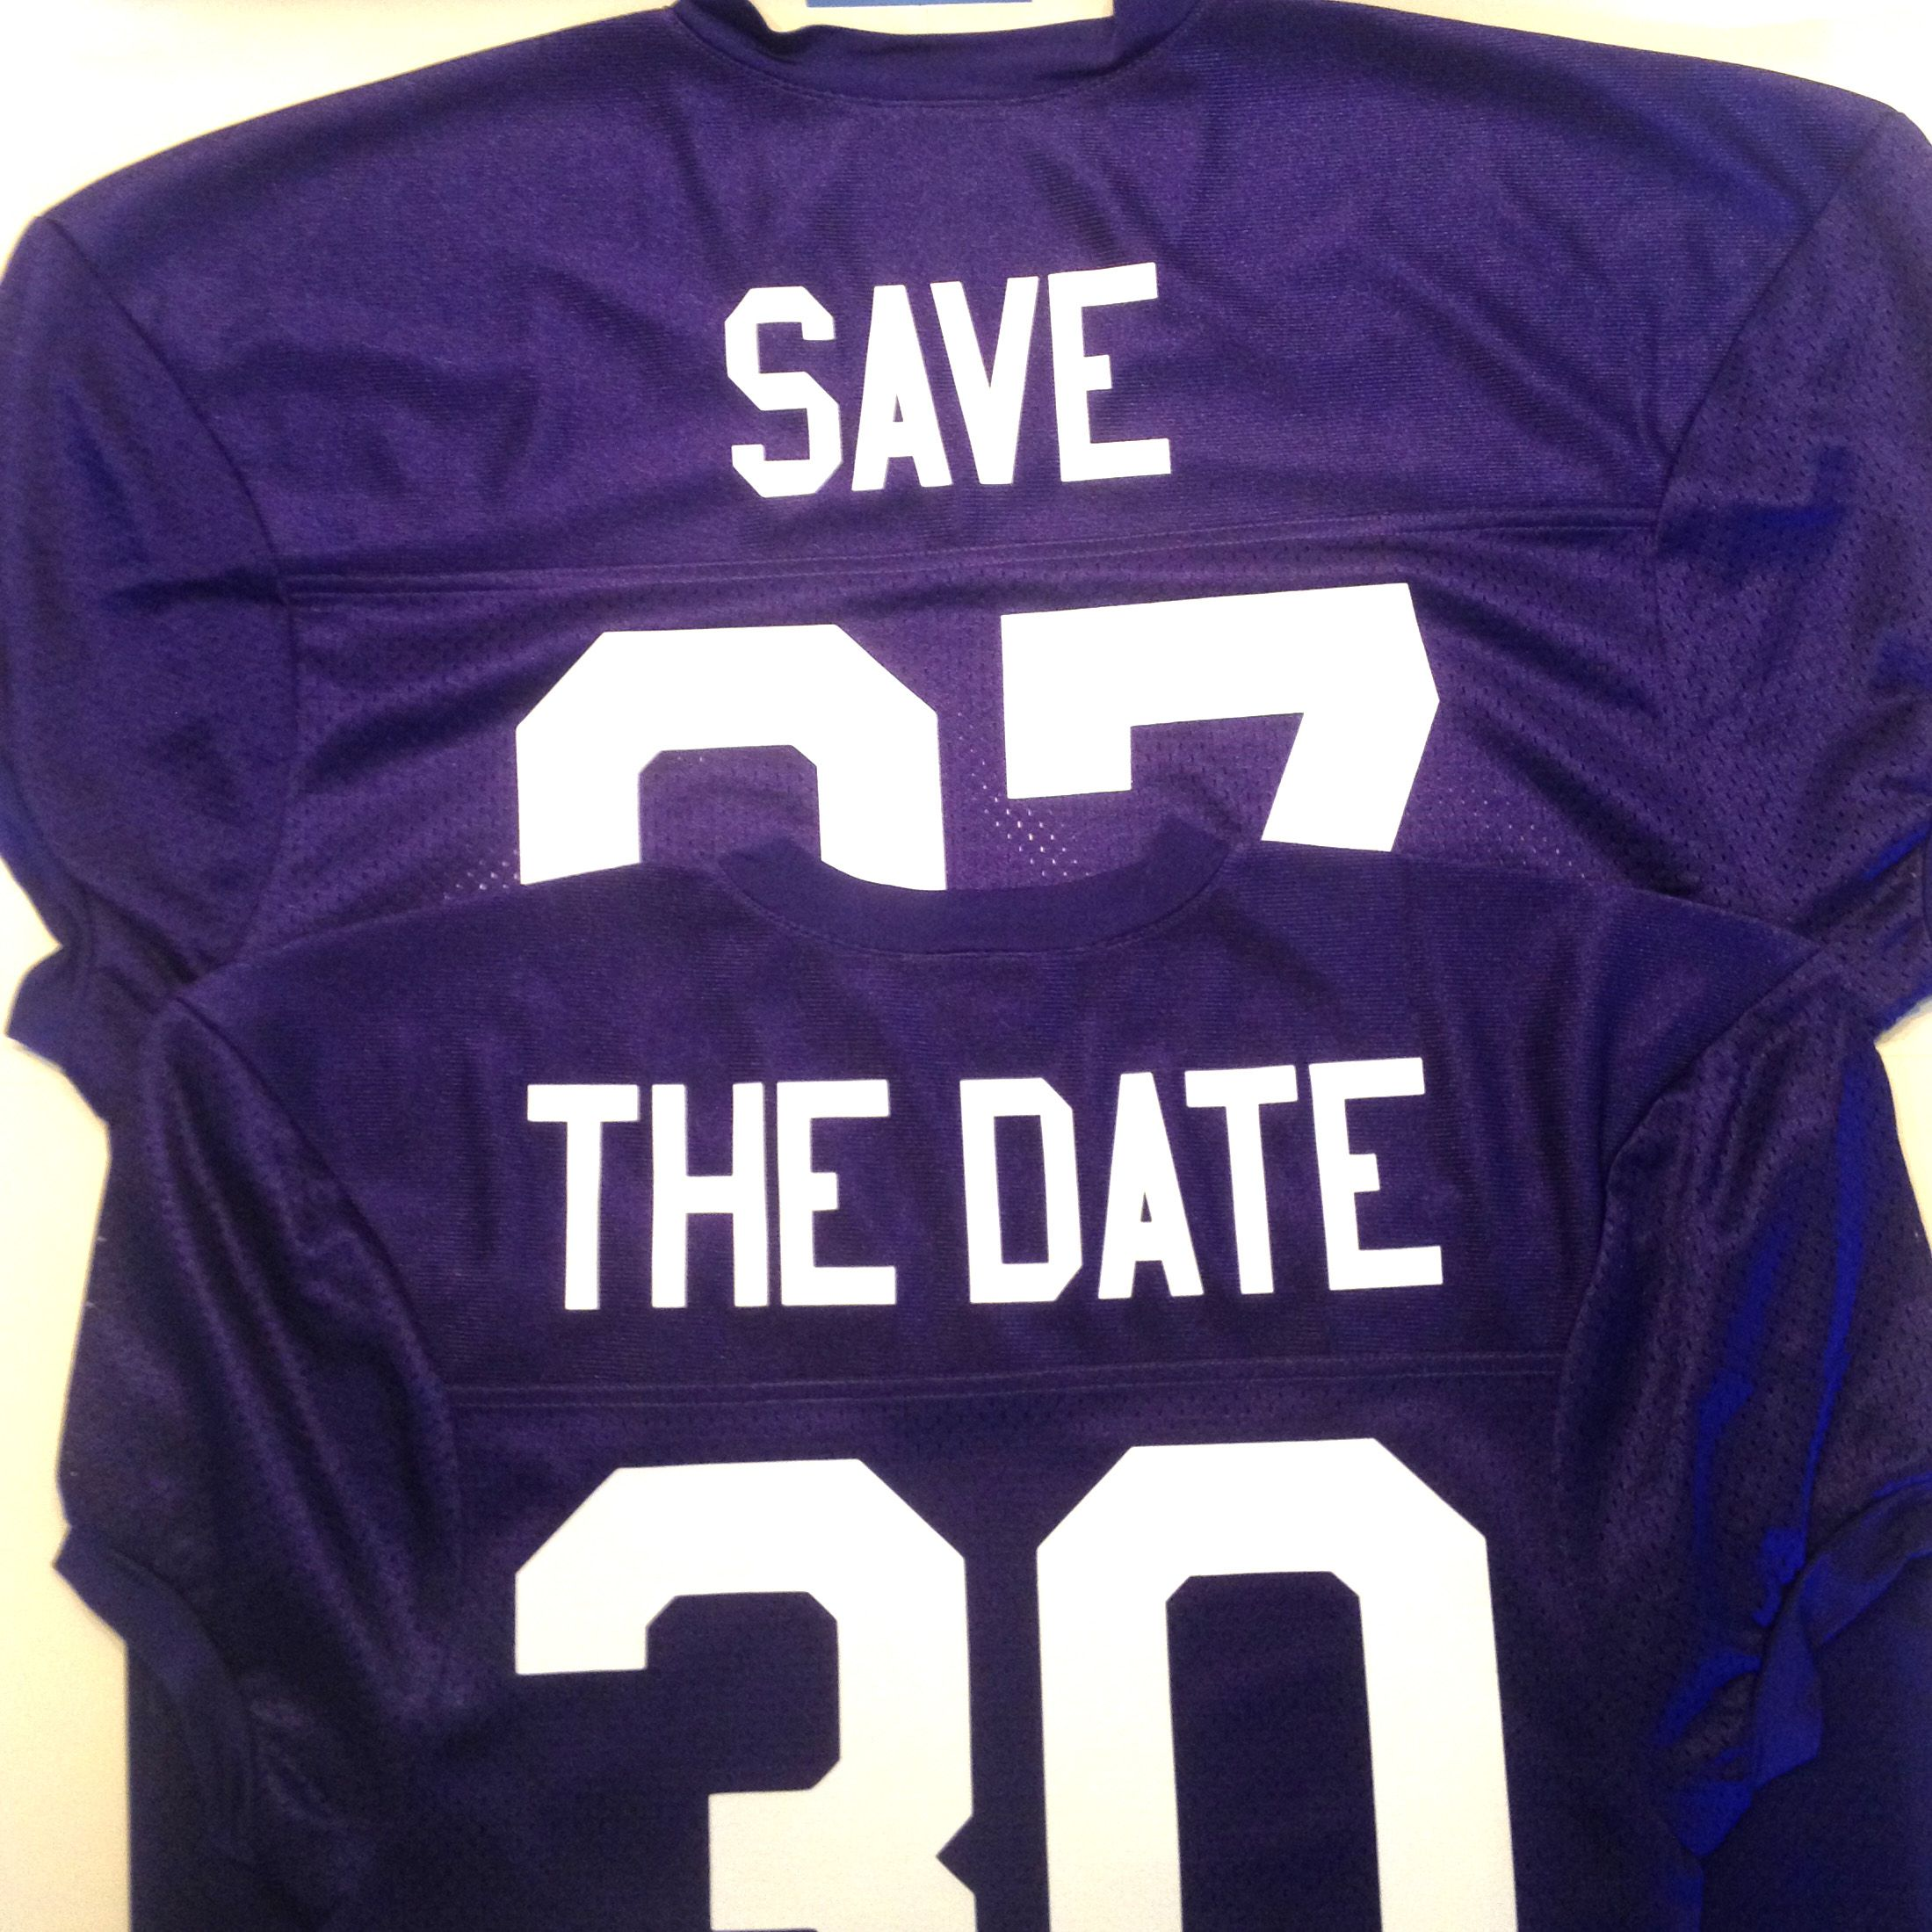 Design your own football jersey t-shirt - Save The Date Crunch Time Custom Football Jersey In Purple With White Lettering